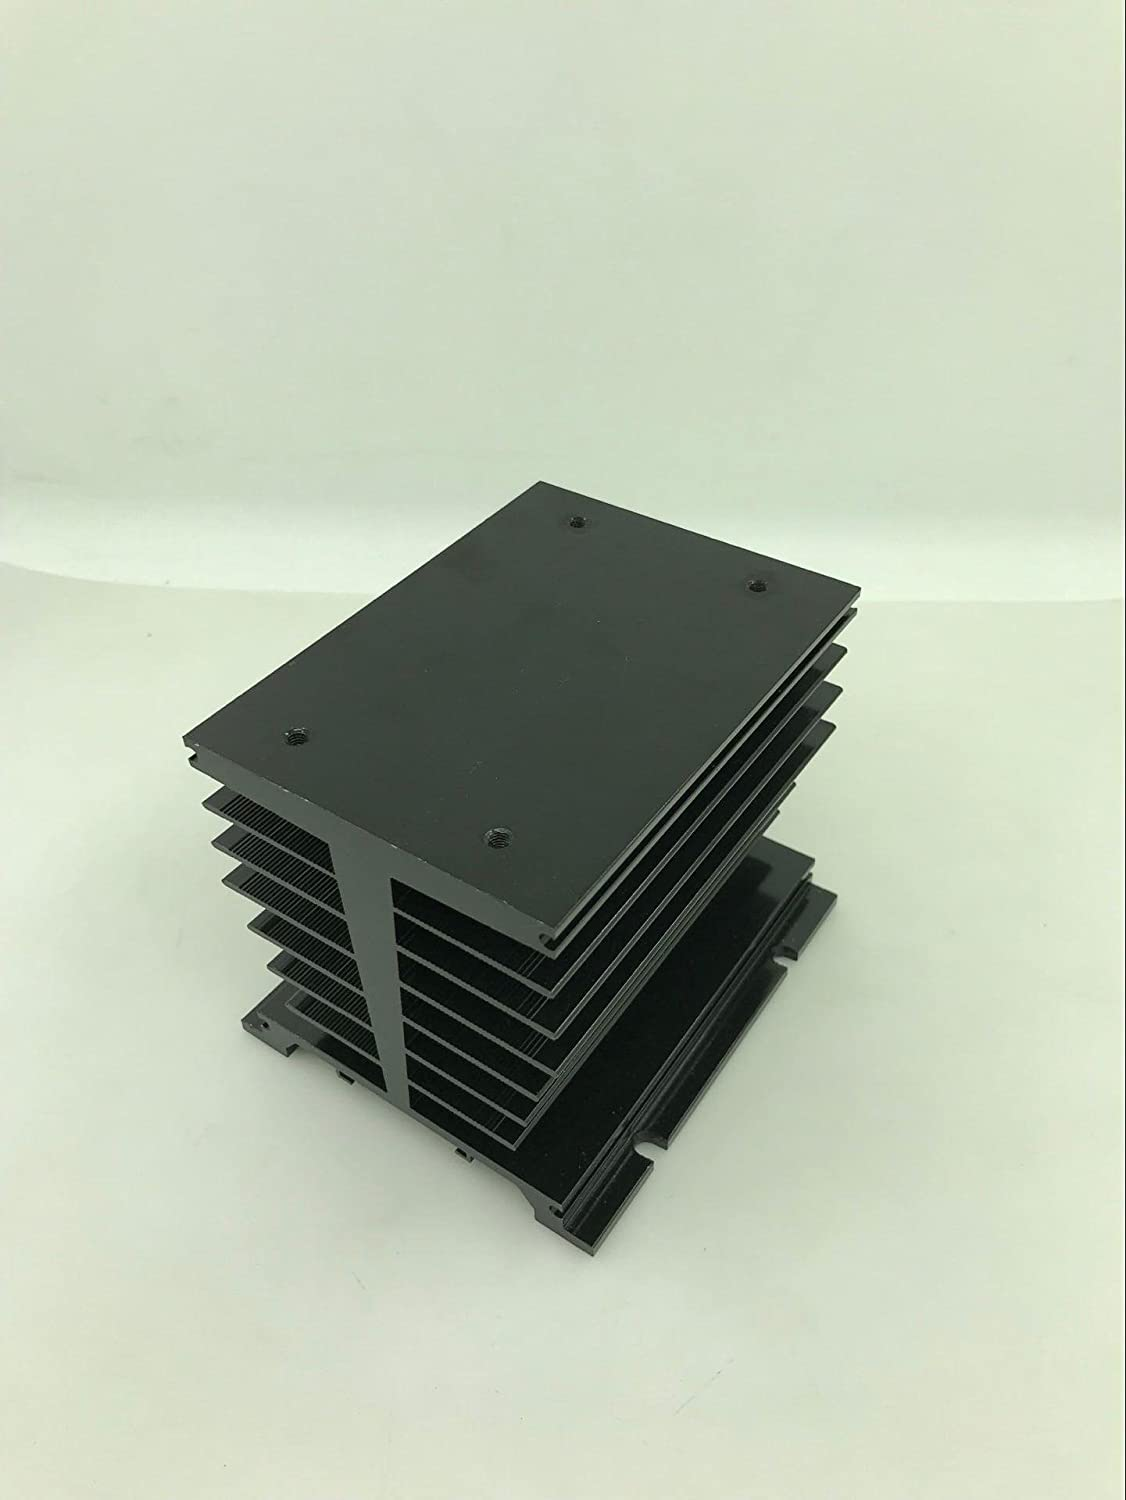 120A Twidec Three-phase solid state relay black aluminum heat sink SSR,for three-phase solid state relays 100A